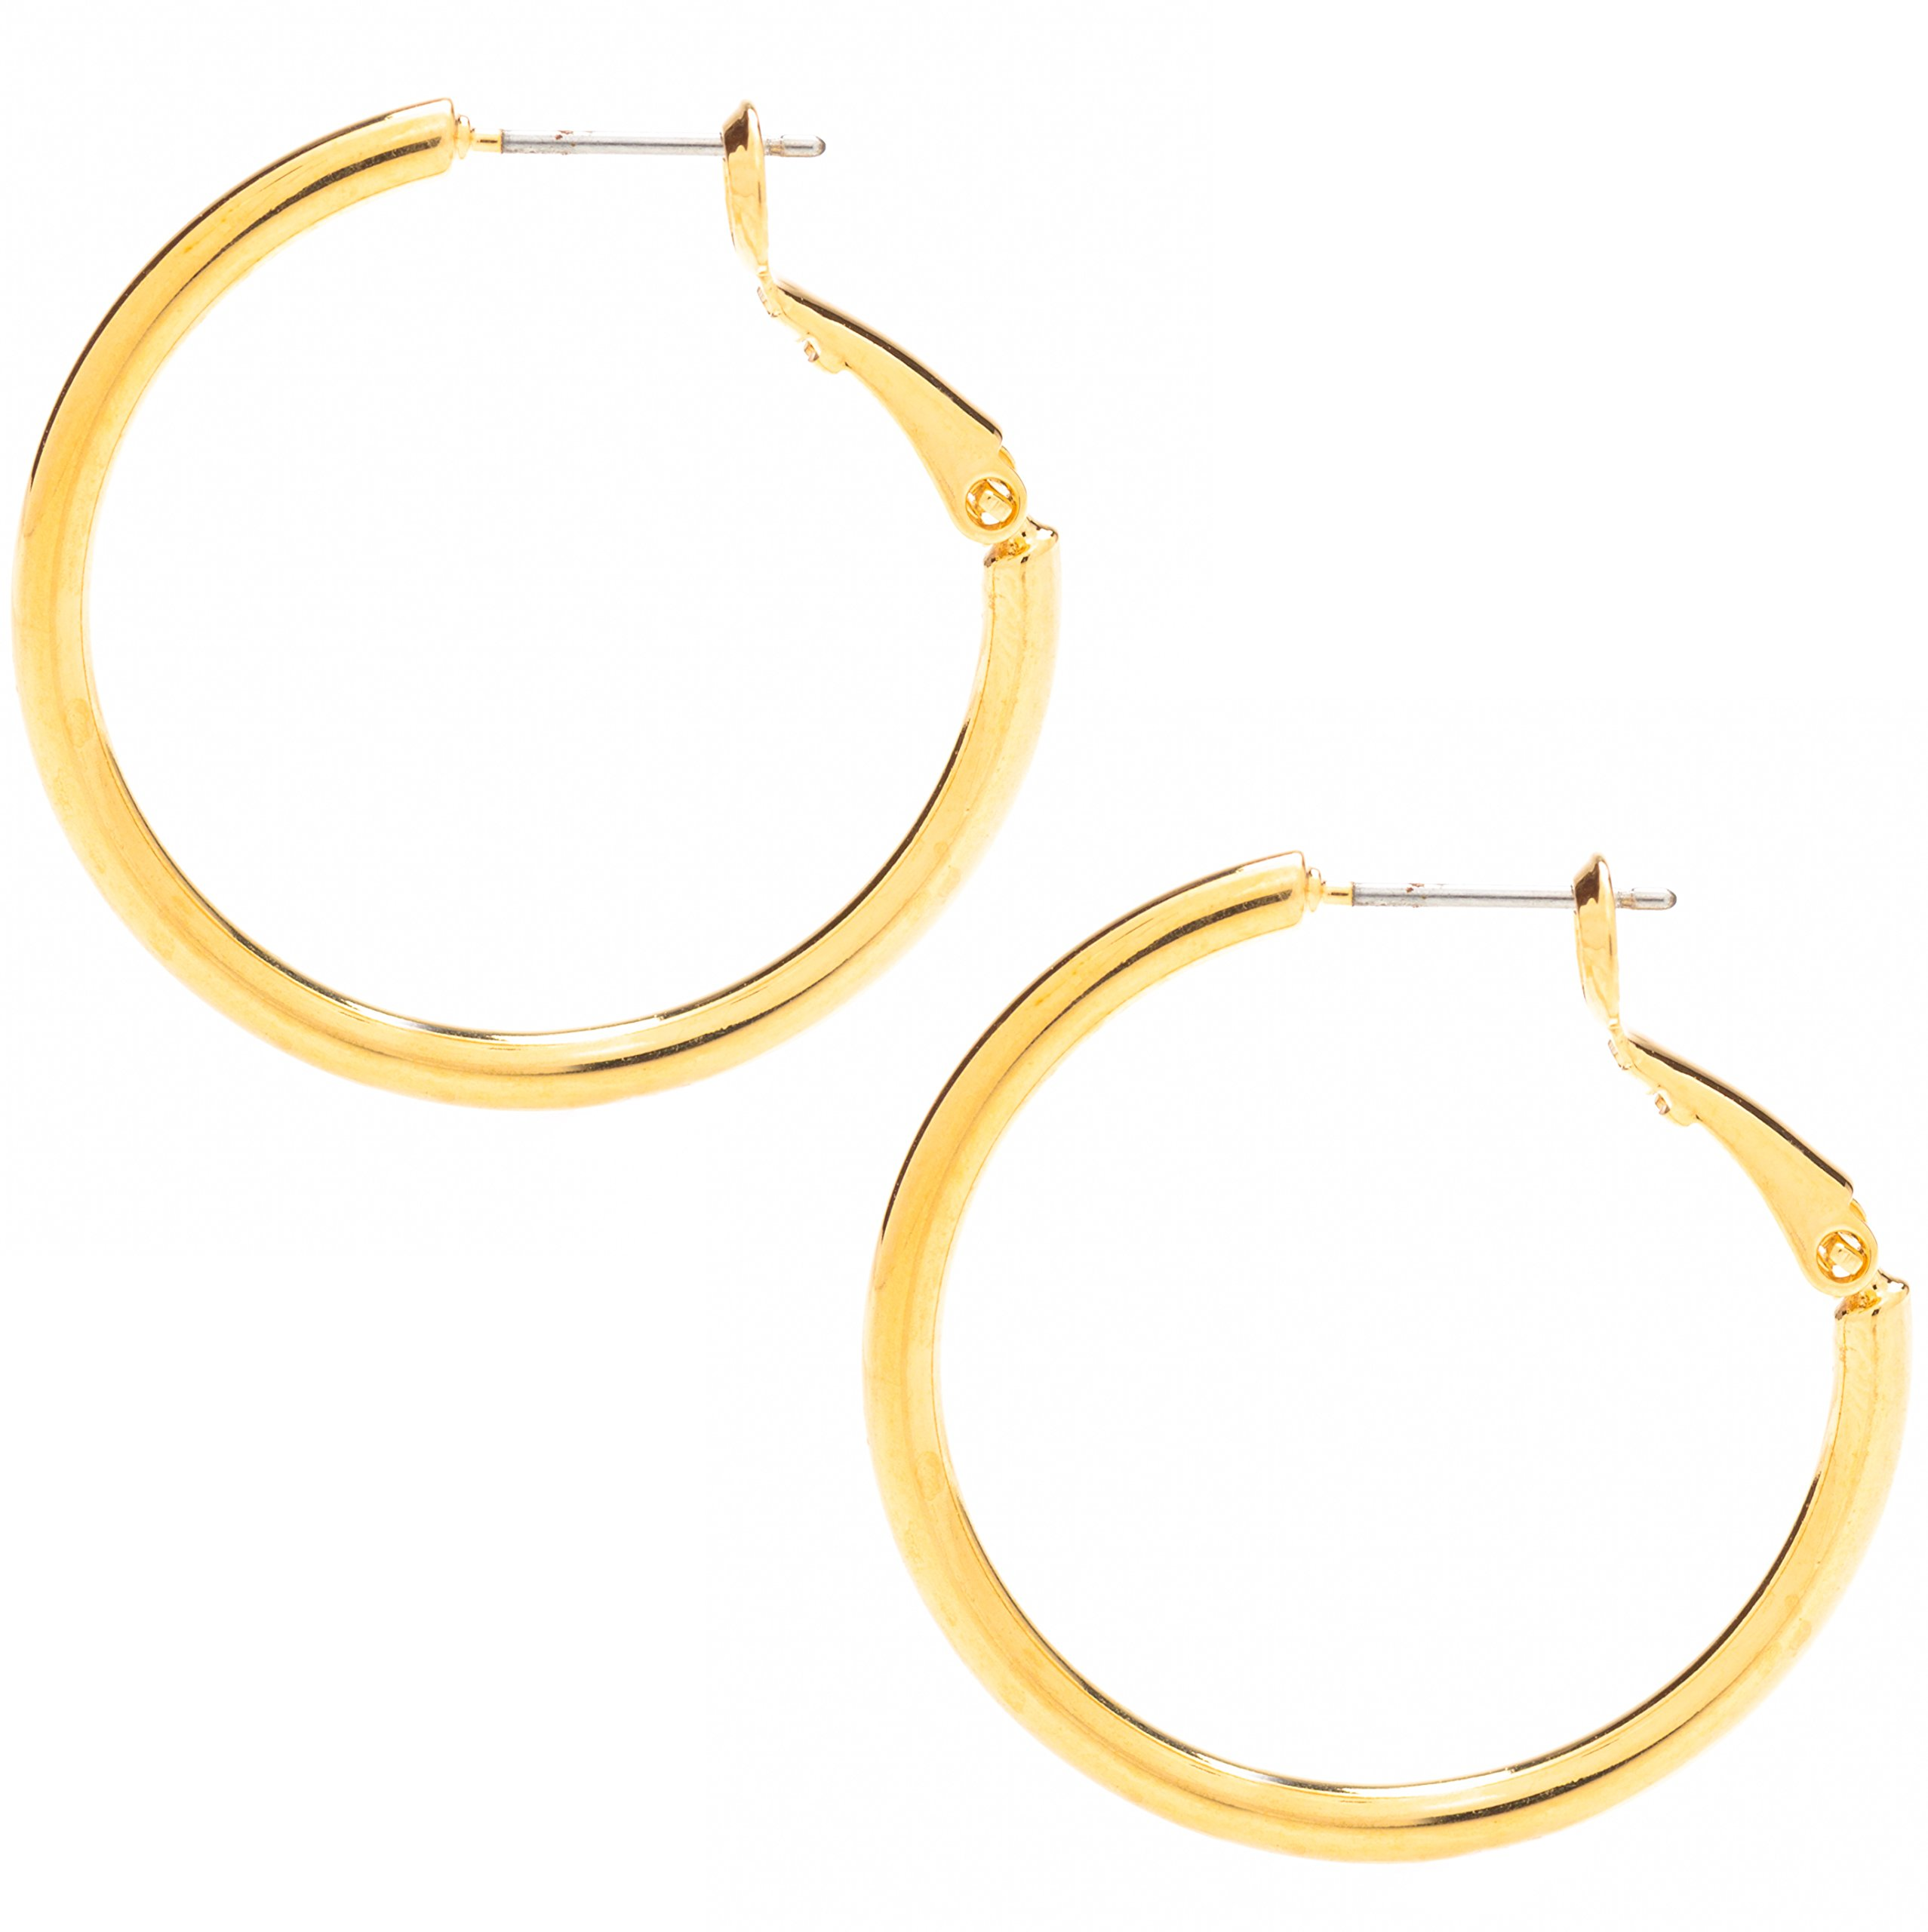 Lifetime Jewelry Gold Hoop Earrings for Women - 20X More Real 24k Plating Than Other Hoops - Safe for Most Ears Hypoallergenic Premium Fashion Jewelry with Lifetime Replacement Guarantee 1.25 inches